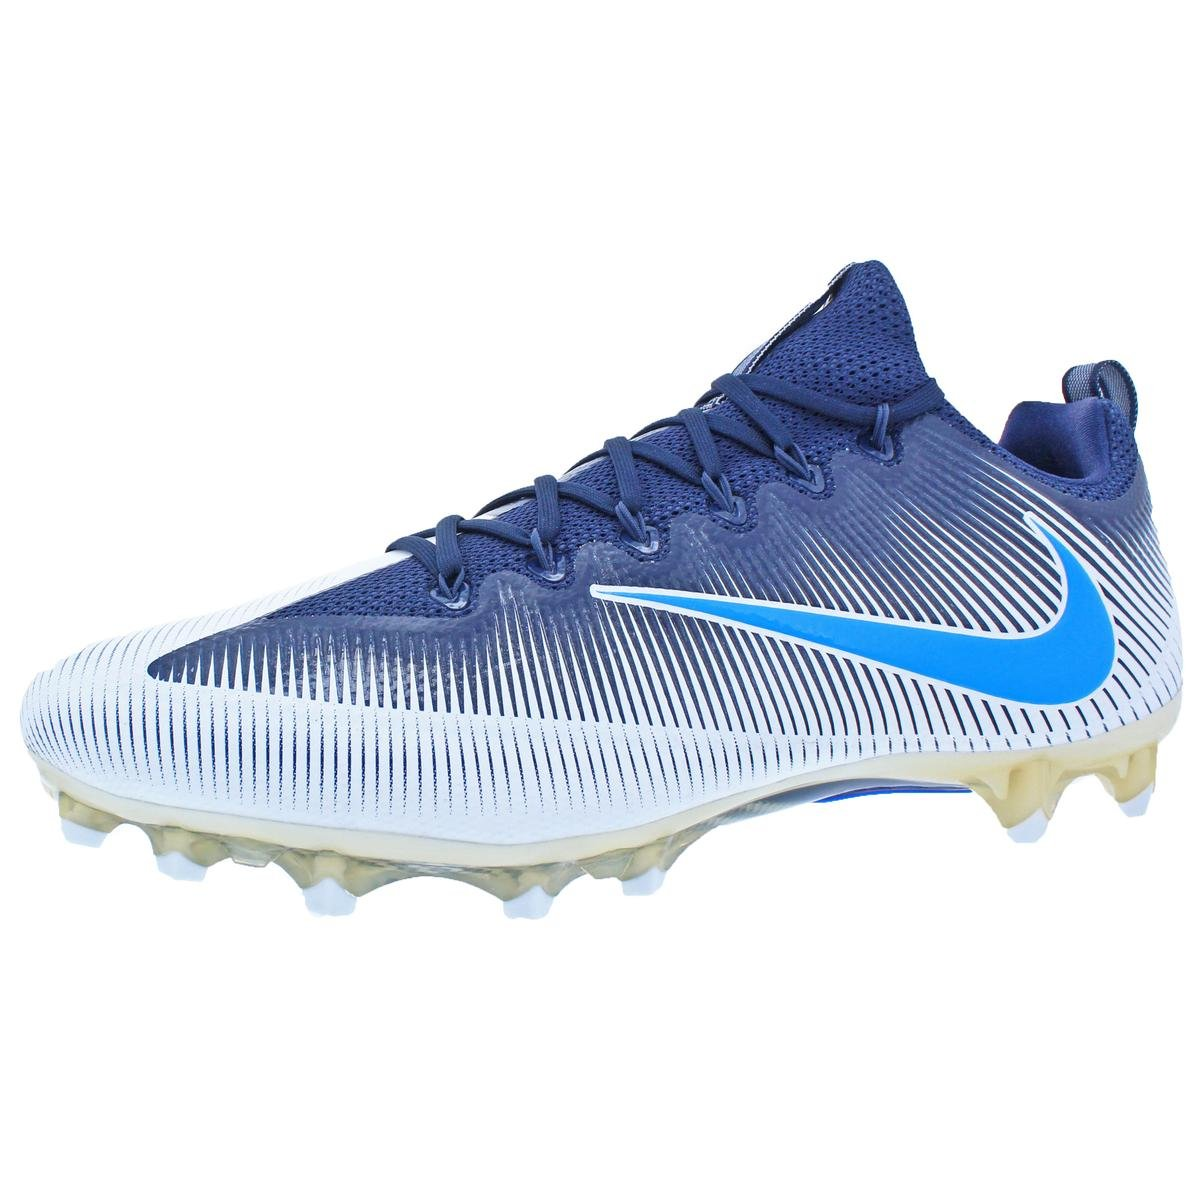 Nike Men's Vapor Untouchable Pro PF Football Cleats (TITANS, 16)